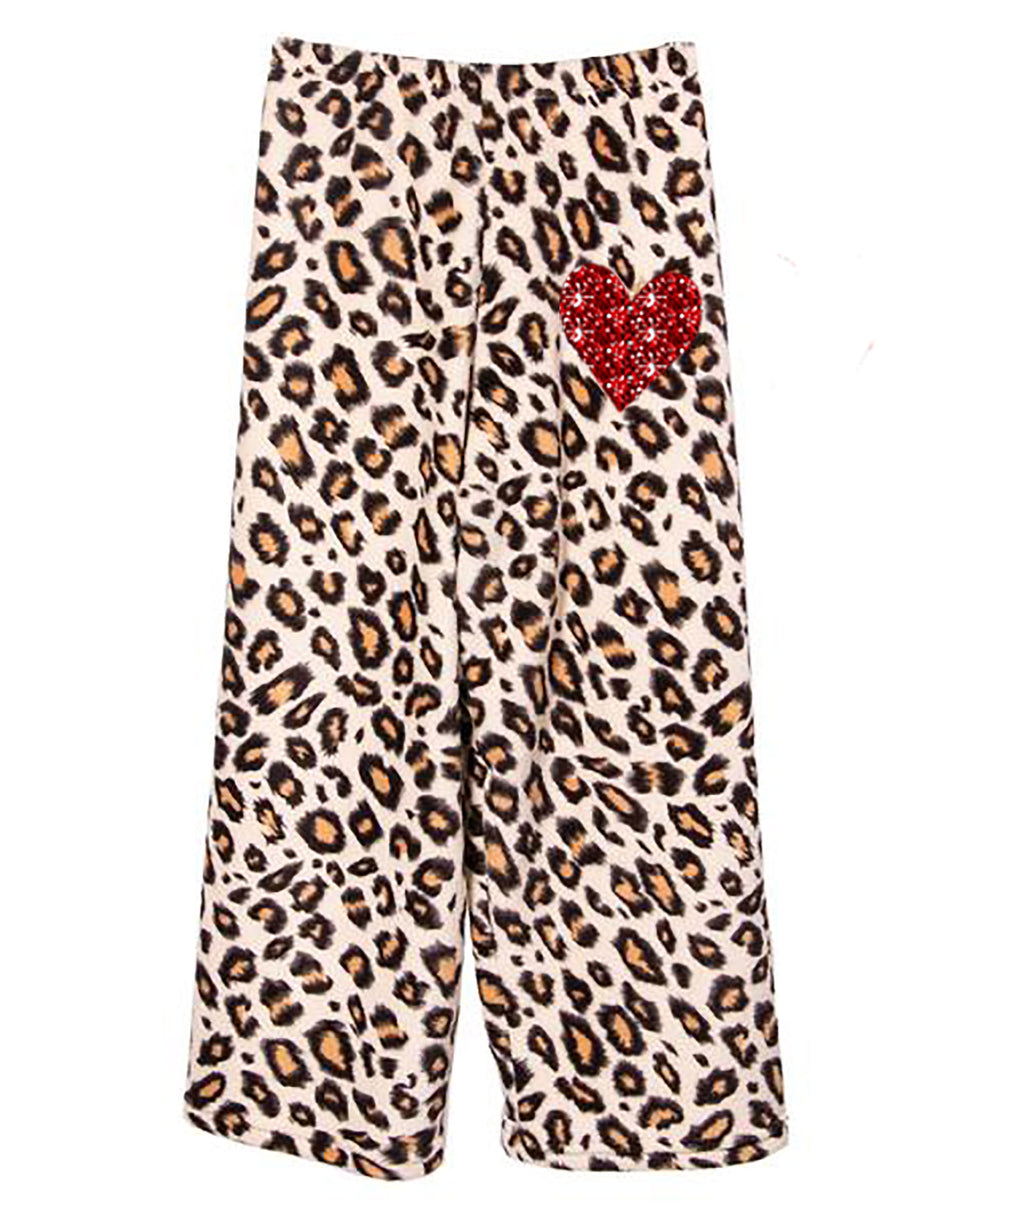 Made with Love and Kisses Red Heart Leopard PJ Pants